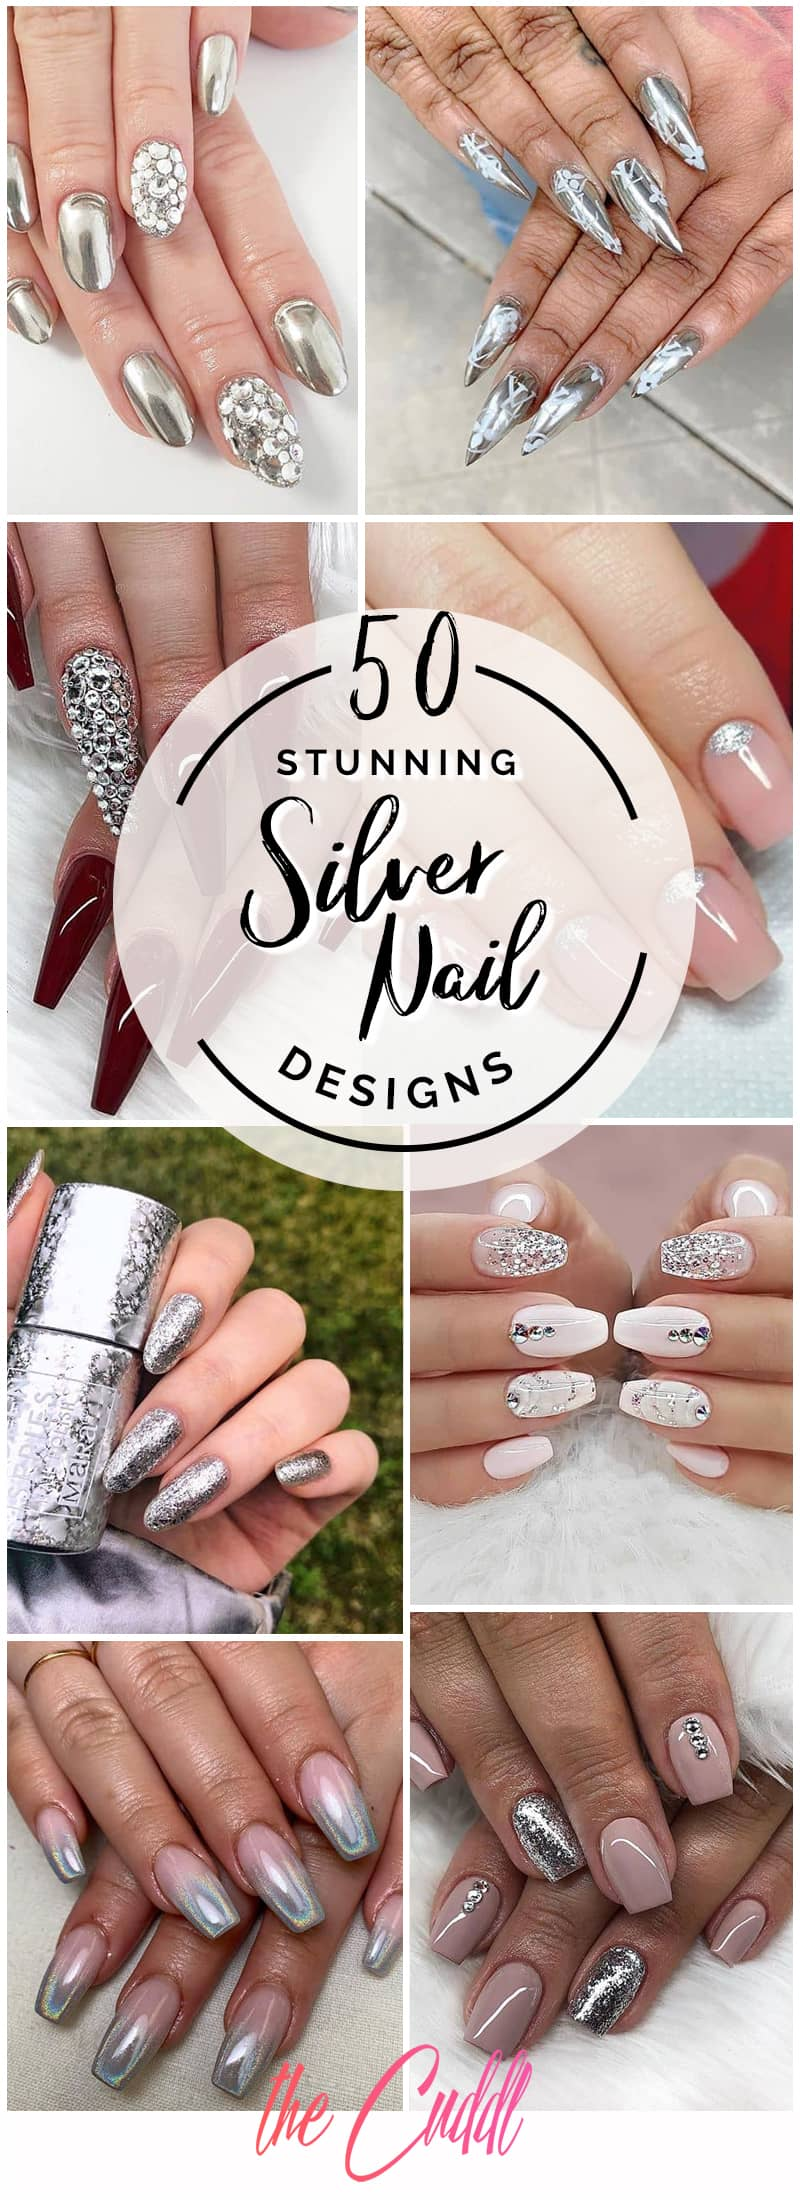 50 Awesome Silver Nail Ideas for Any Occasion